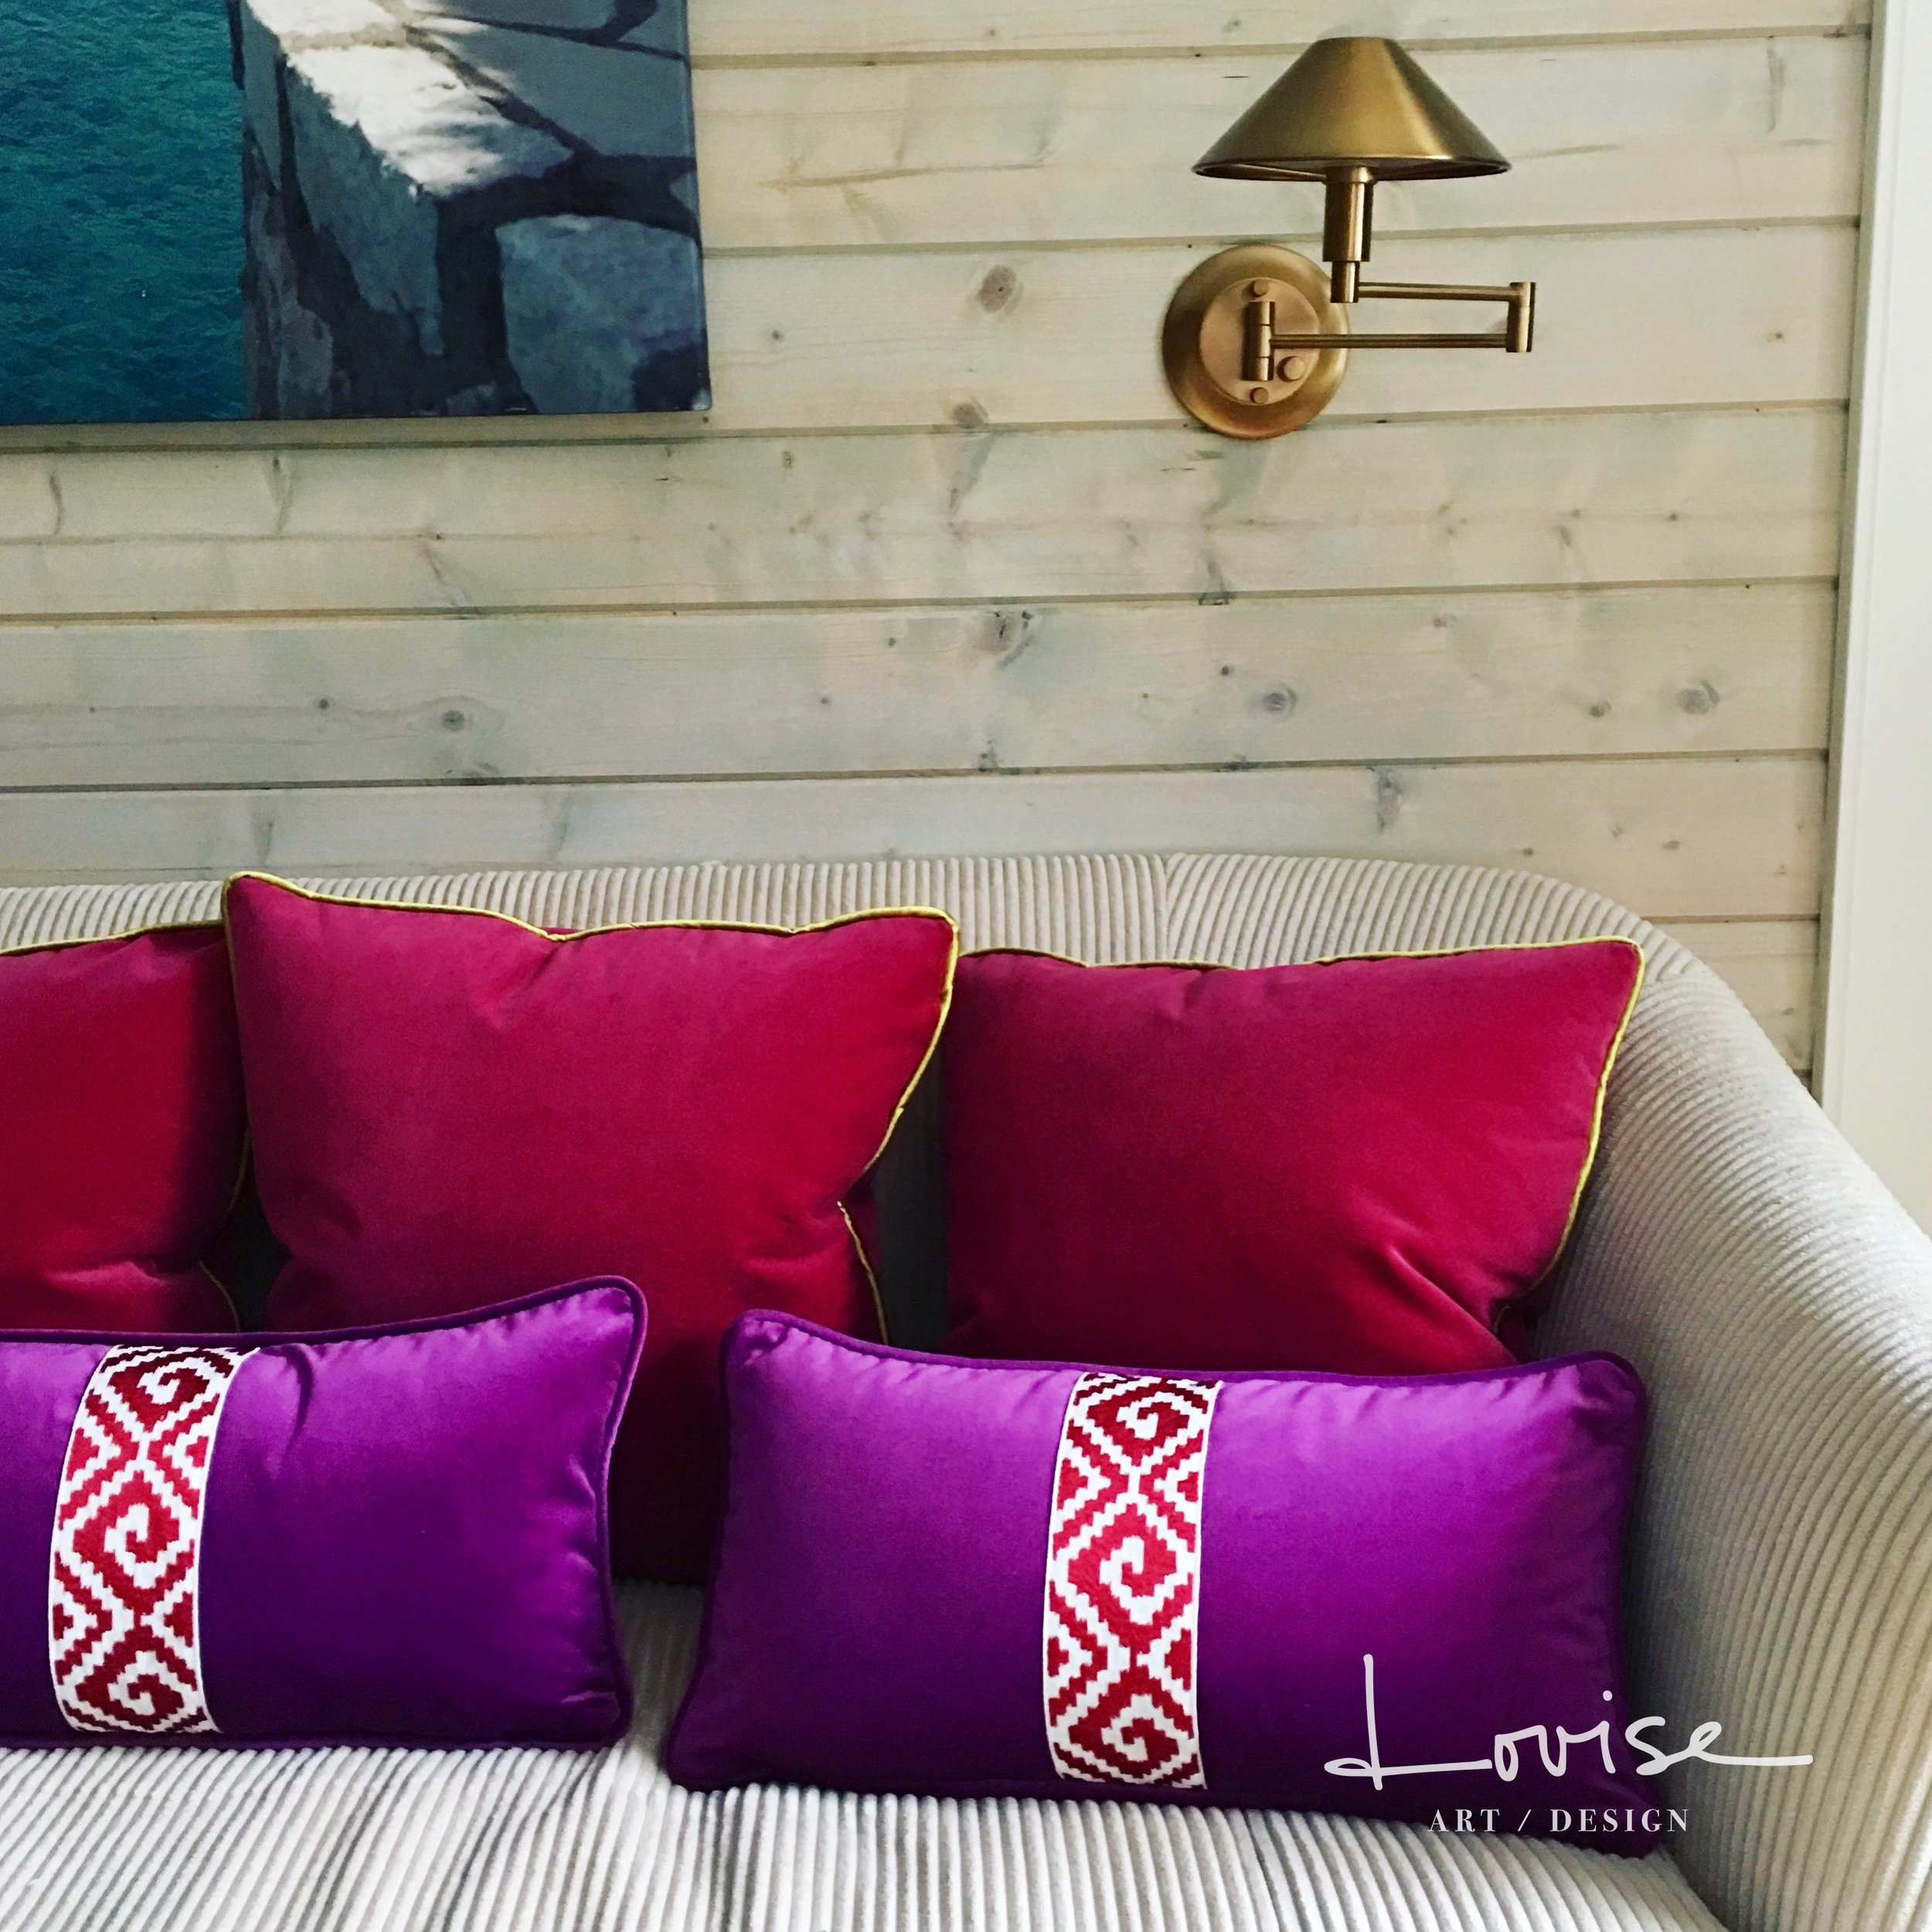 Custom pink and purple velvet pillows with brass sconces